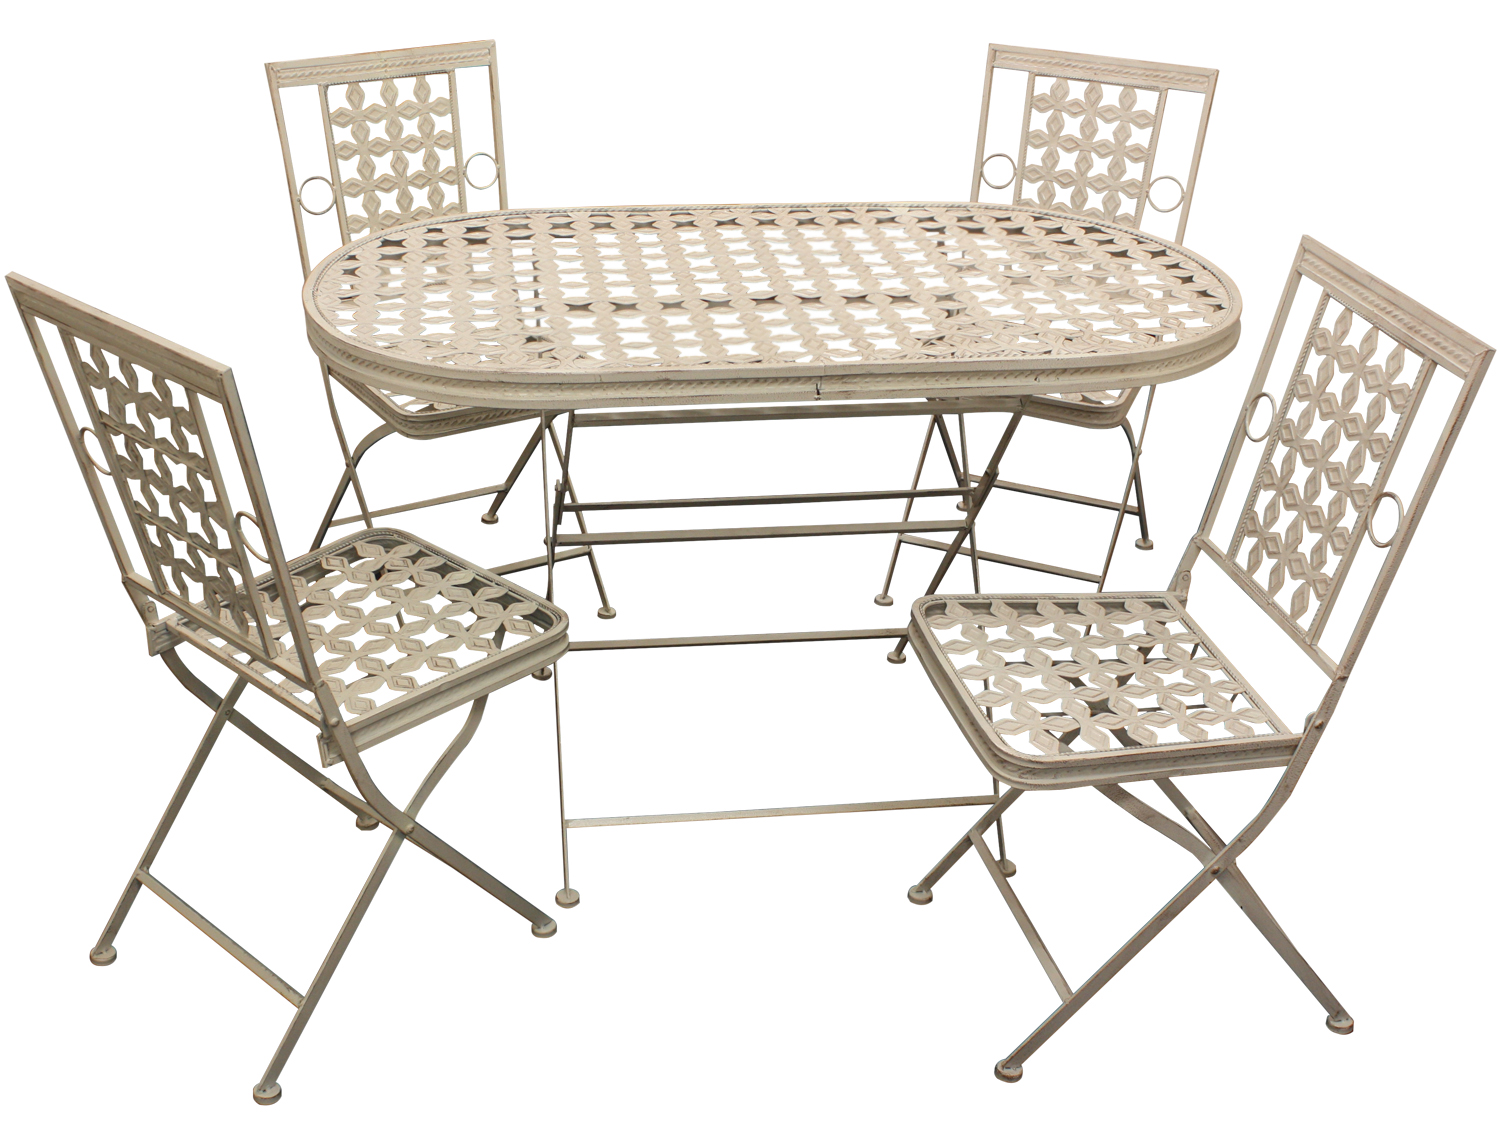 Maribelle folding metal outdoor garden patio dining table for Outside table and chairs